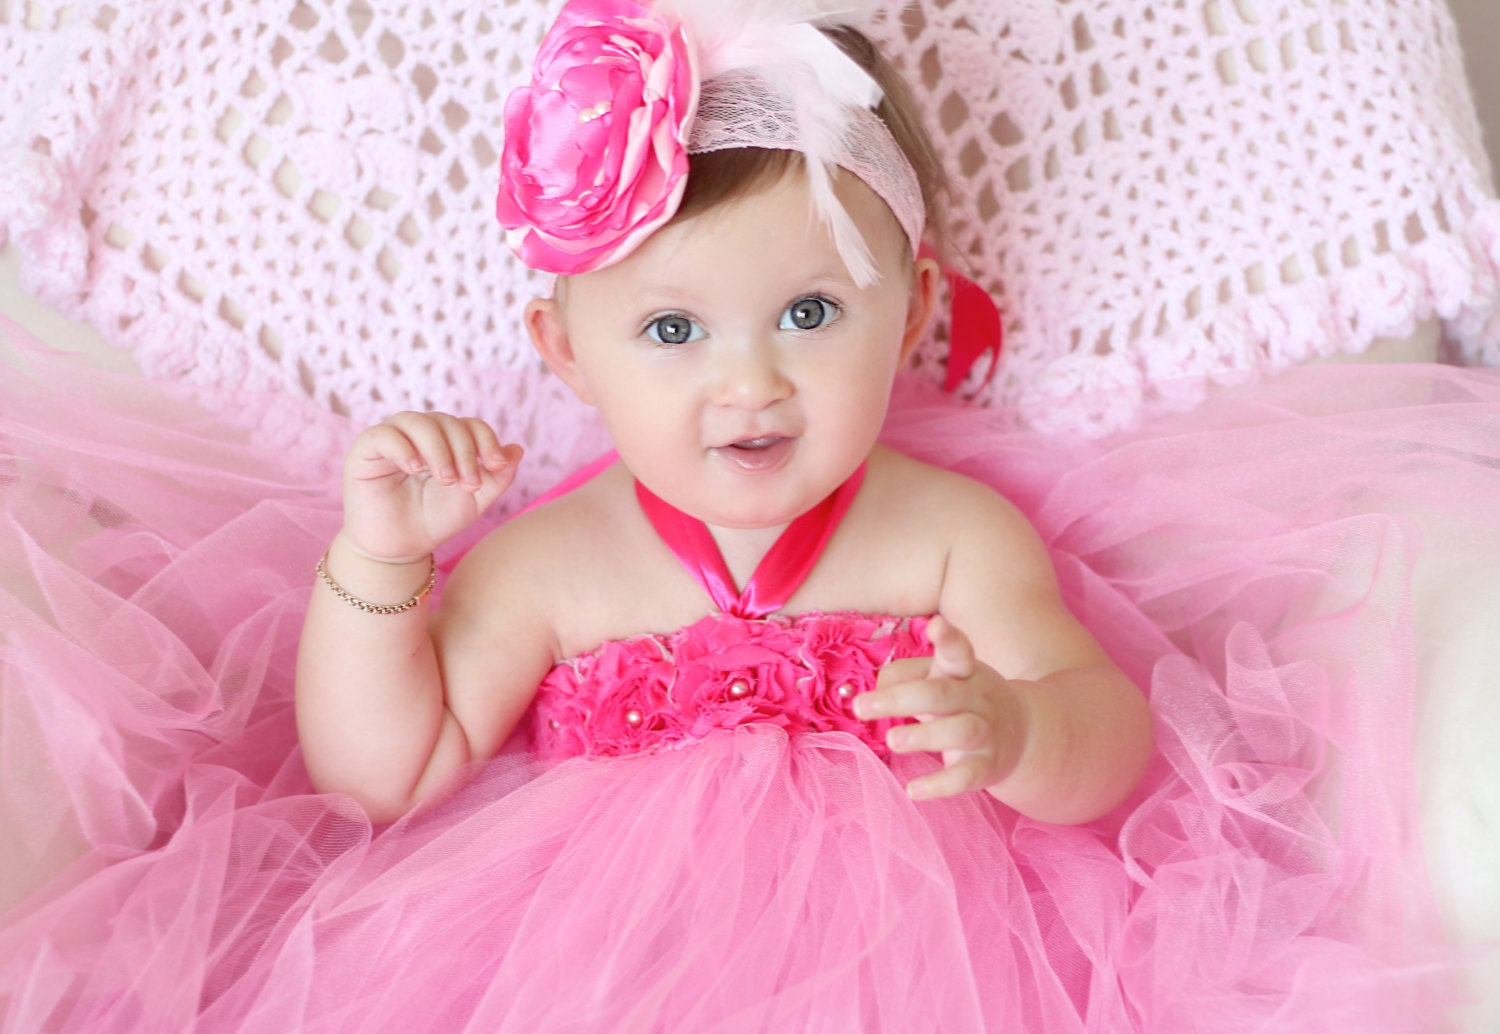 Beautiful Babies With Flowers The Image